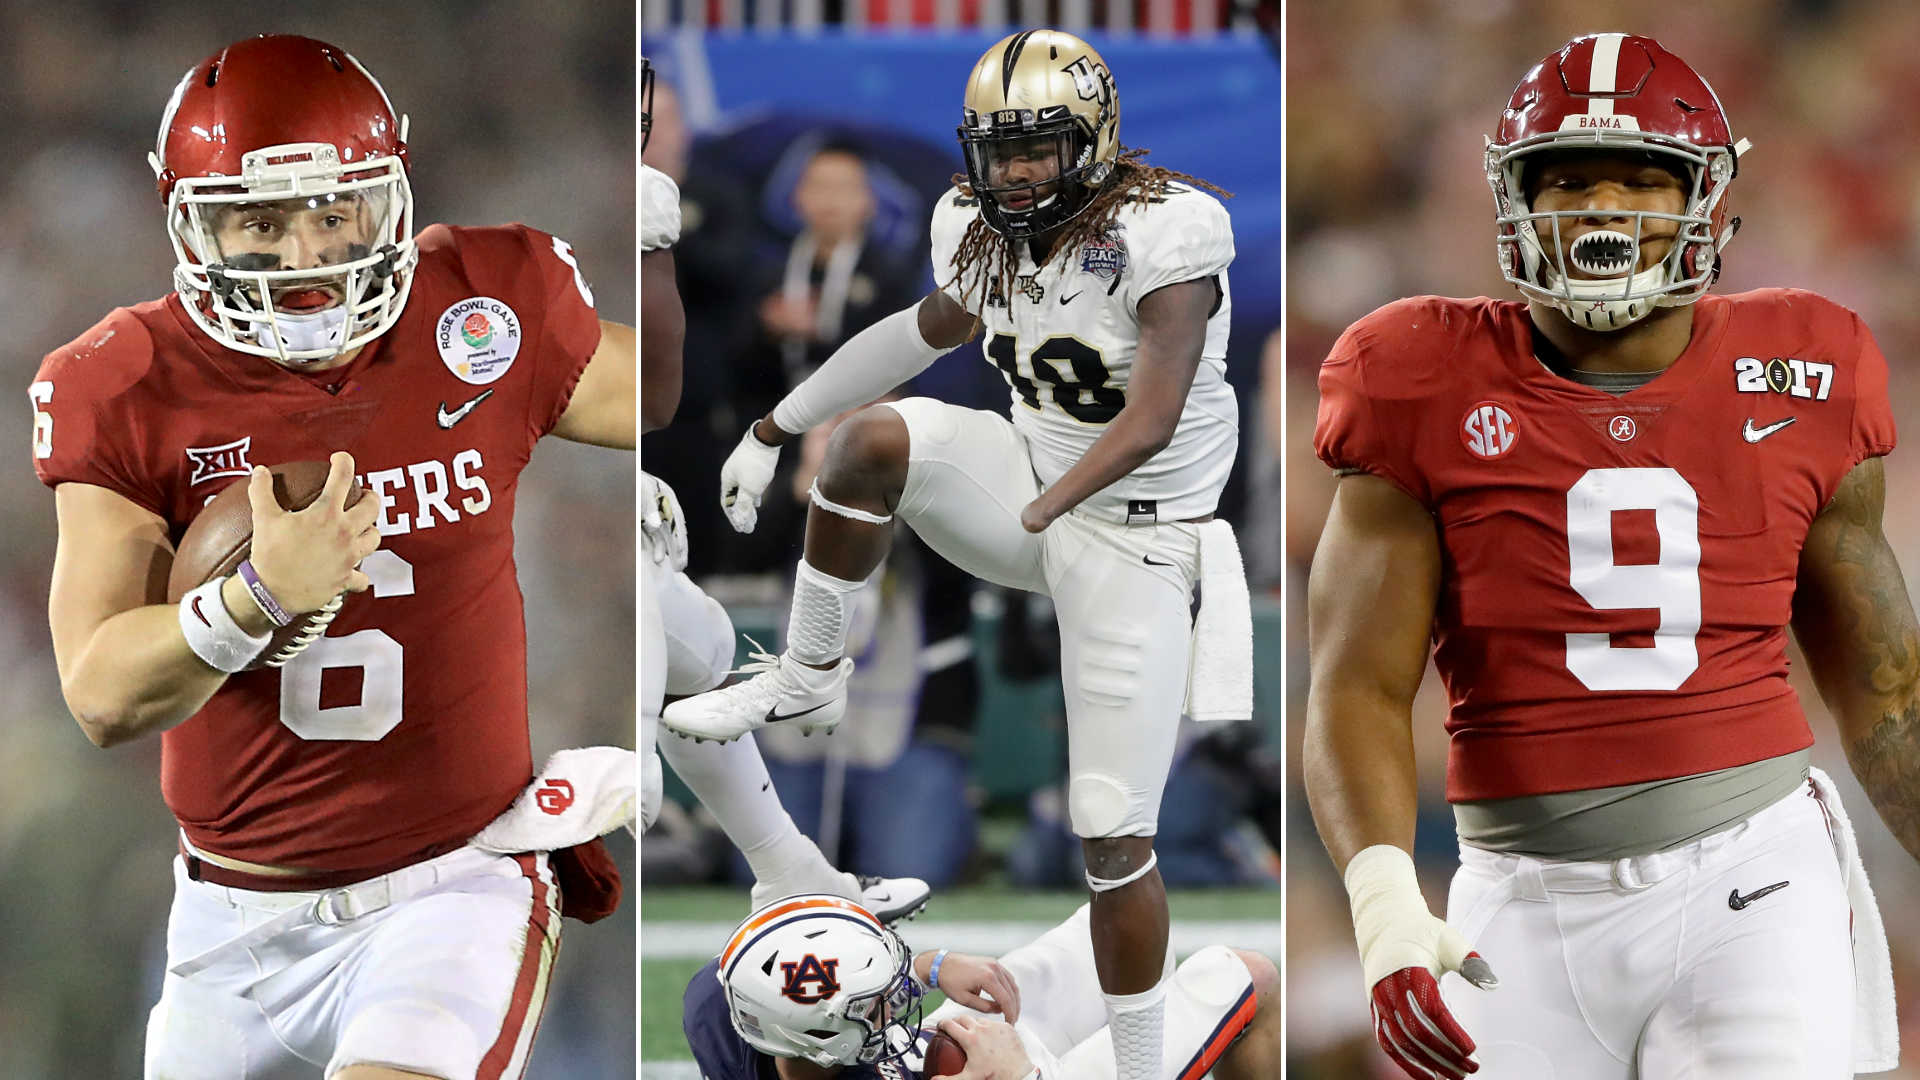 Biggest storylines of Senior Bowl, from Baker Mayfield to Shaquem Griffin